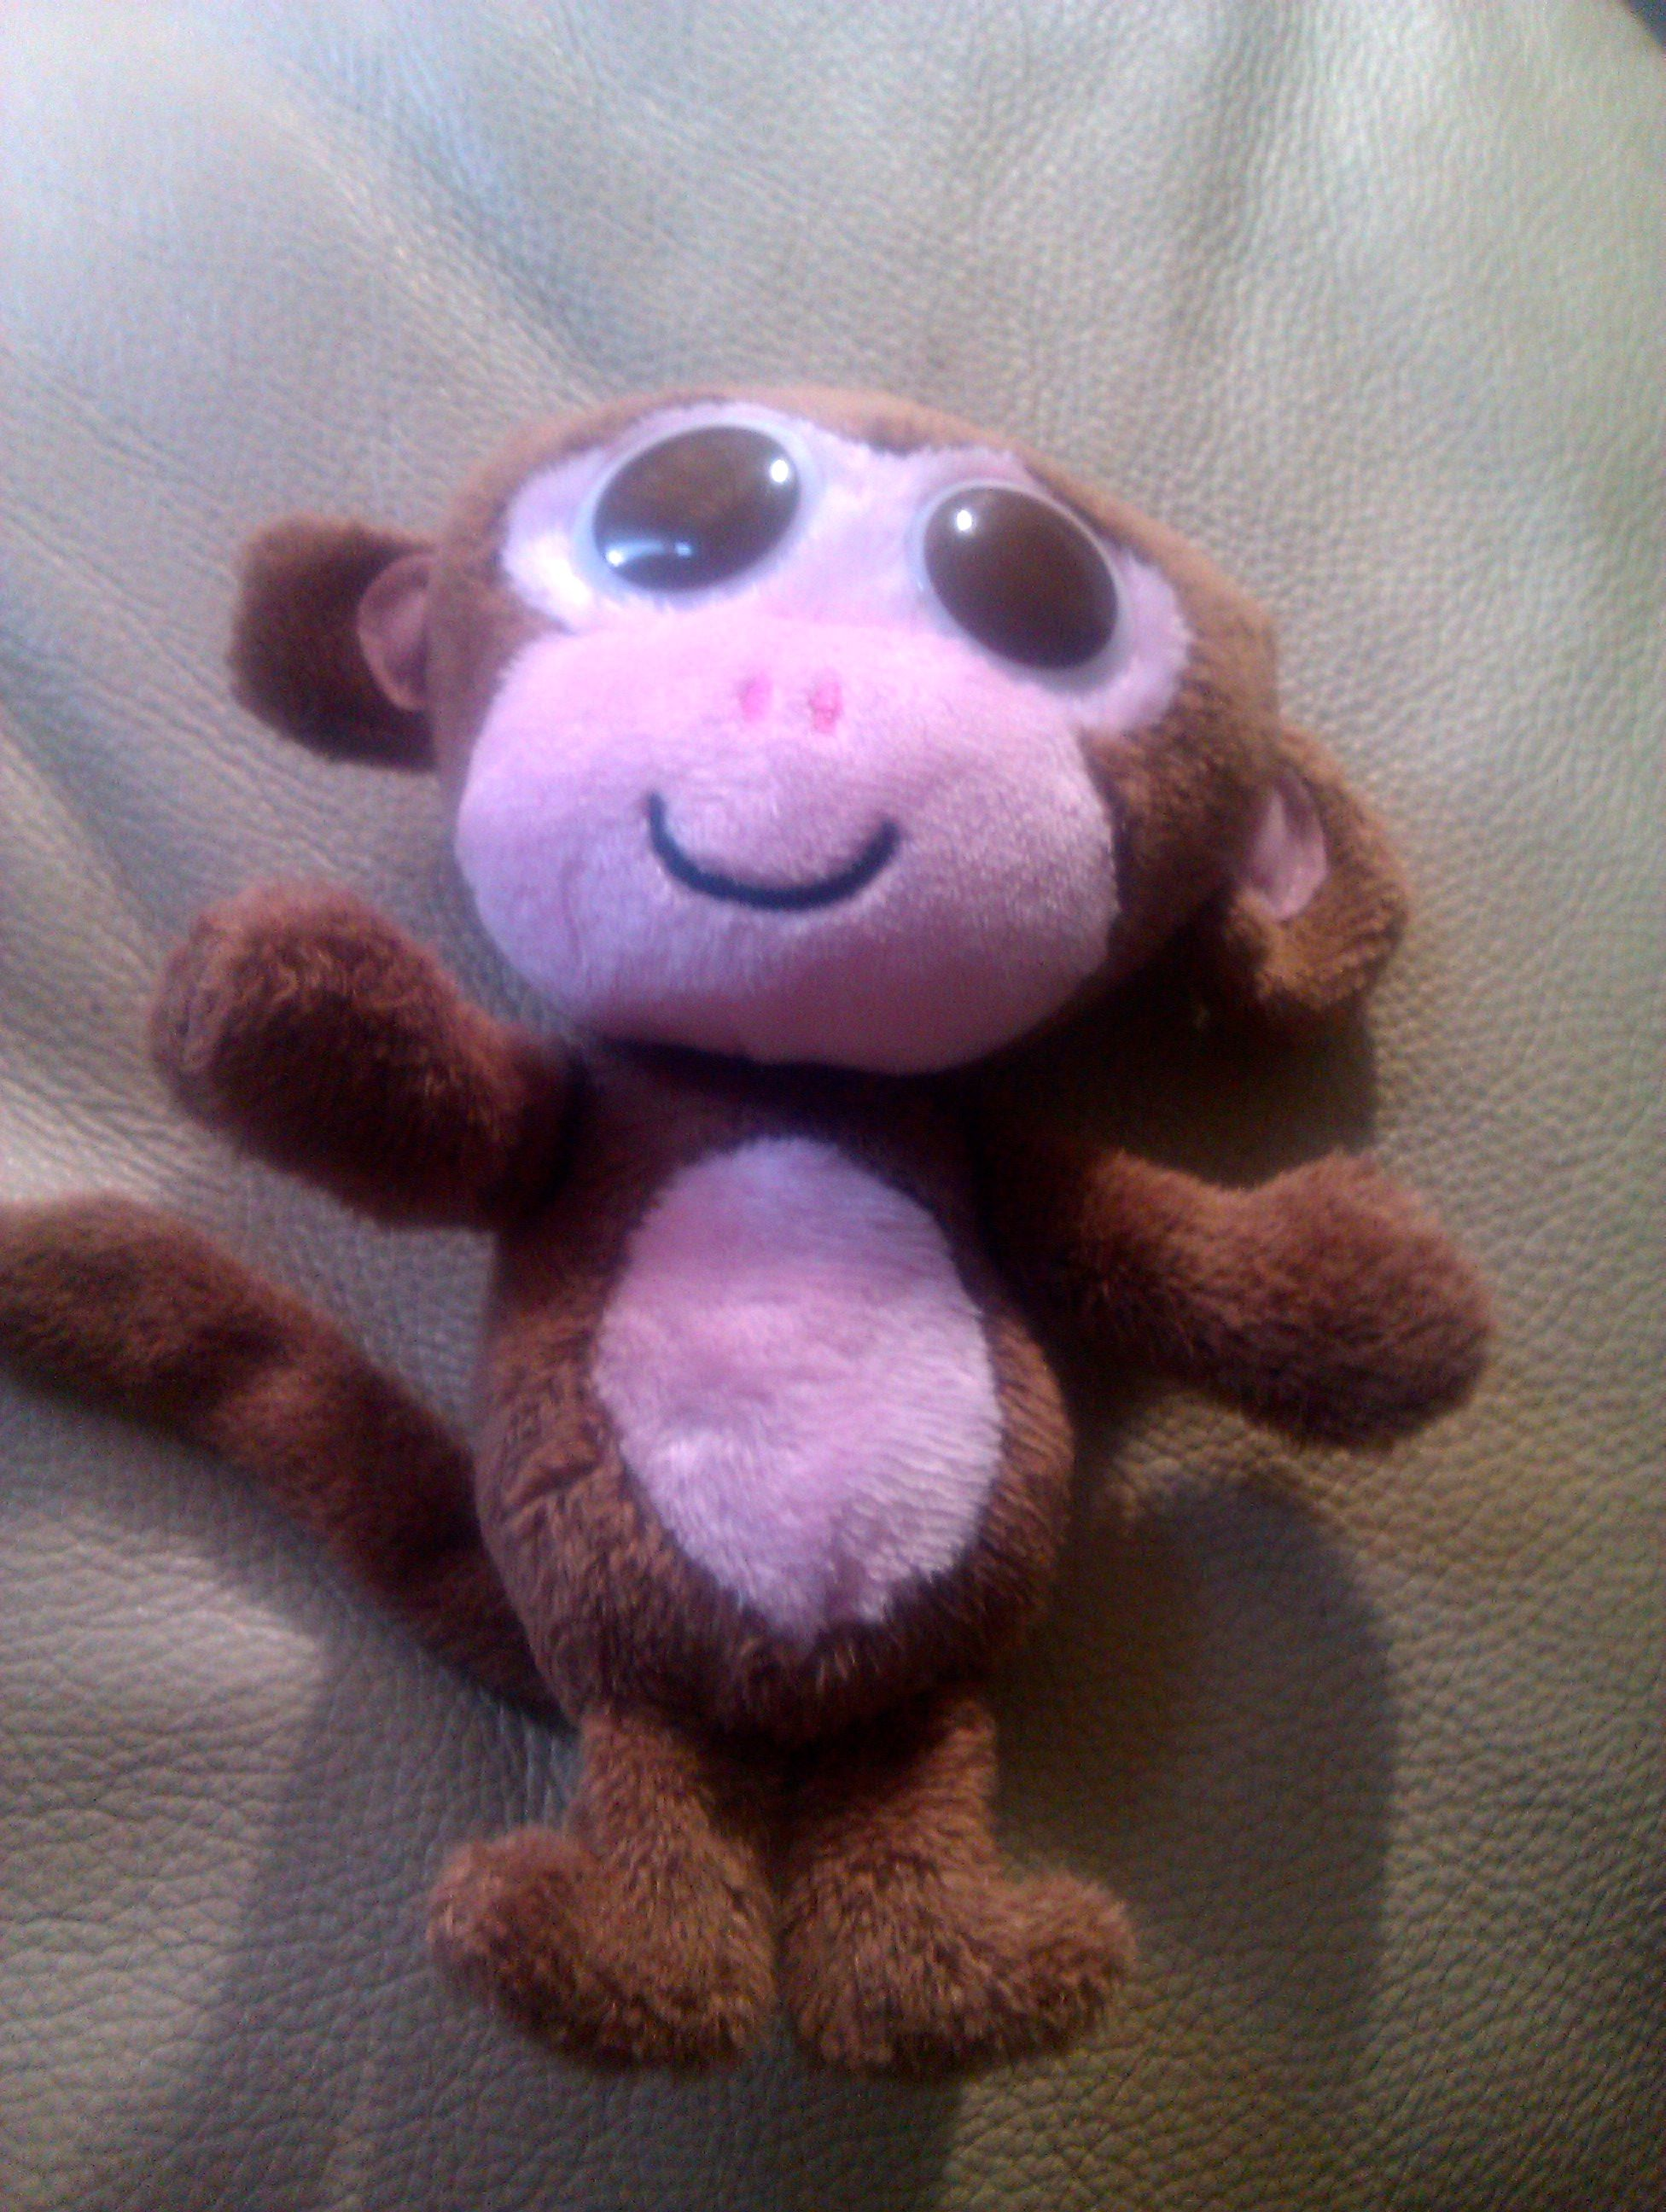 Very cute free monkey toy I got with a Cadbury's buttons egg!